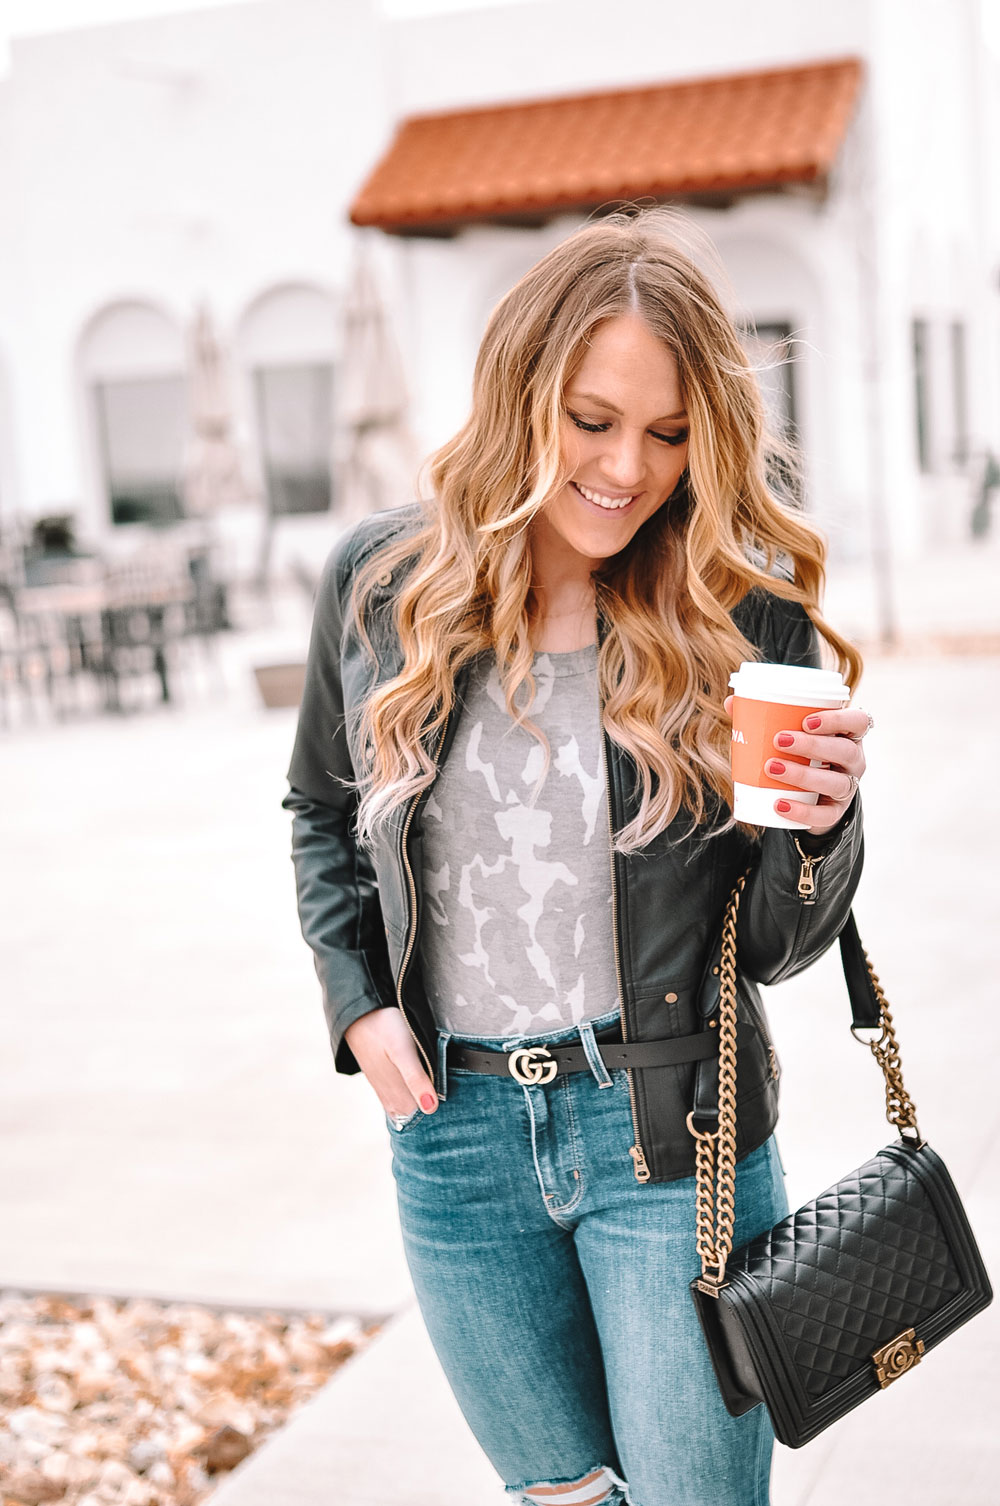 OKC blogger Amanda Martin styles camo and leather